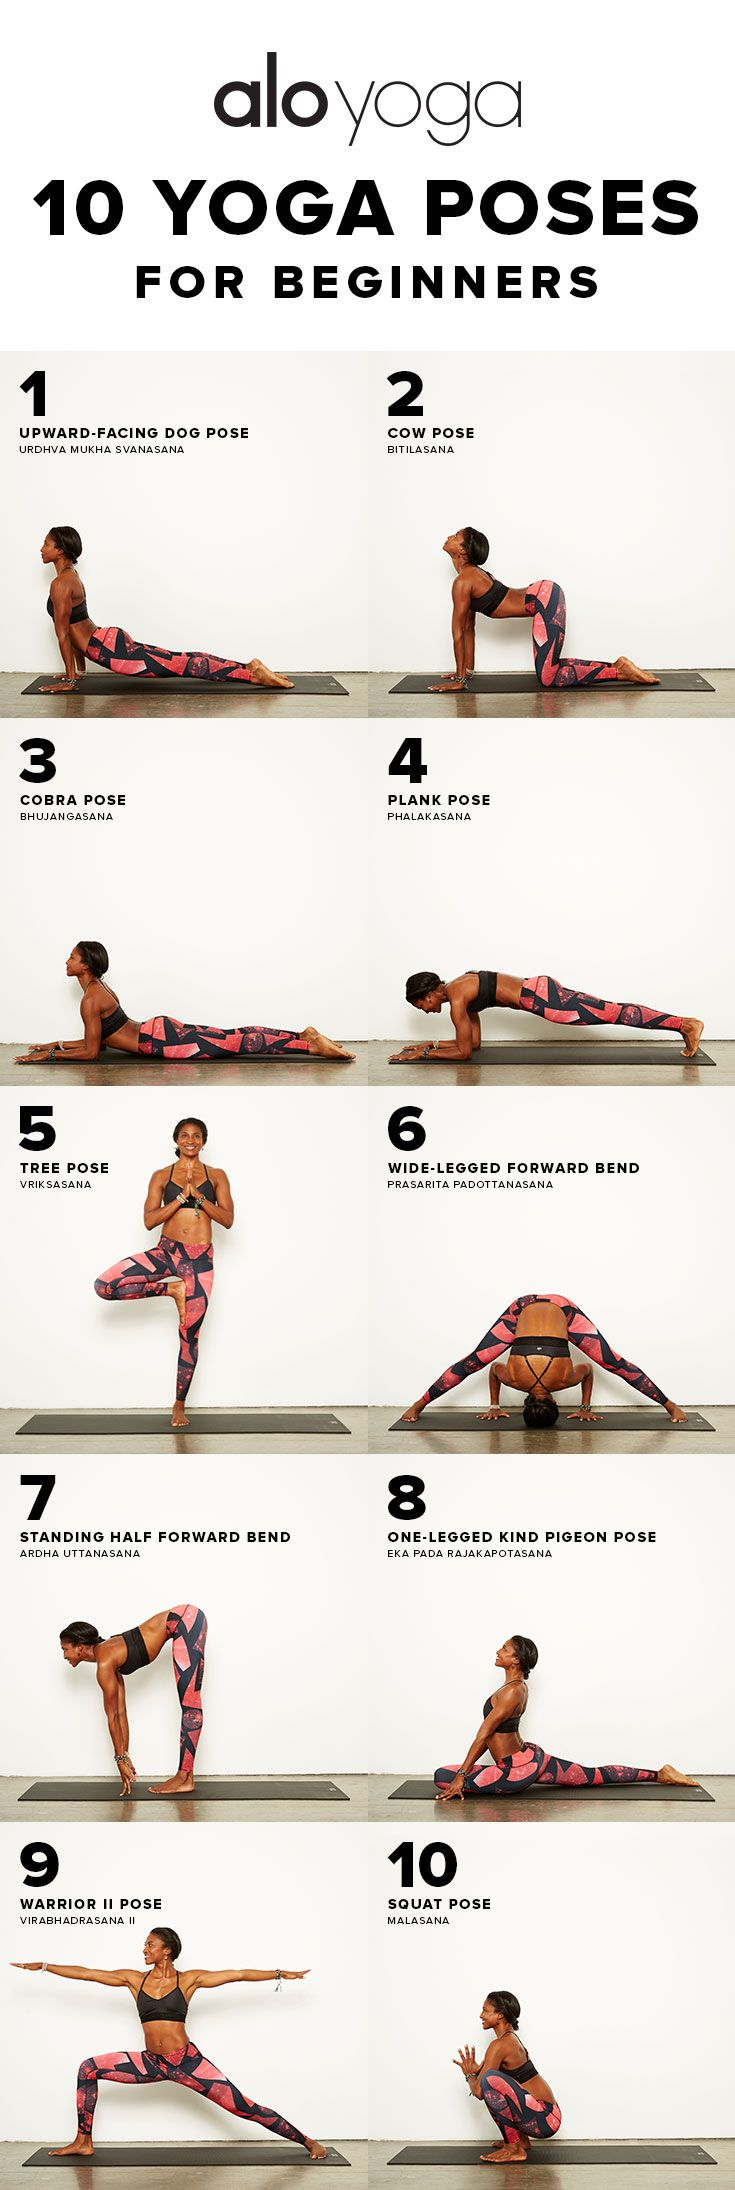 10 Yoga Poses For Beginners http://www.aloyoga.com